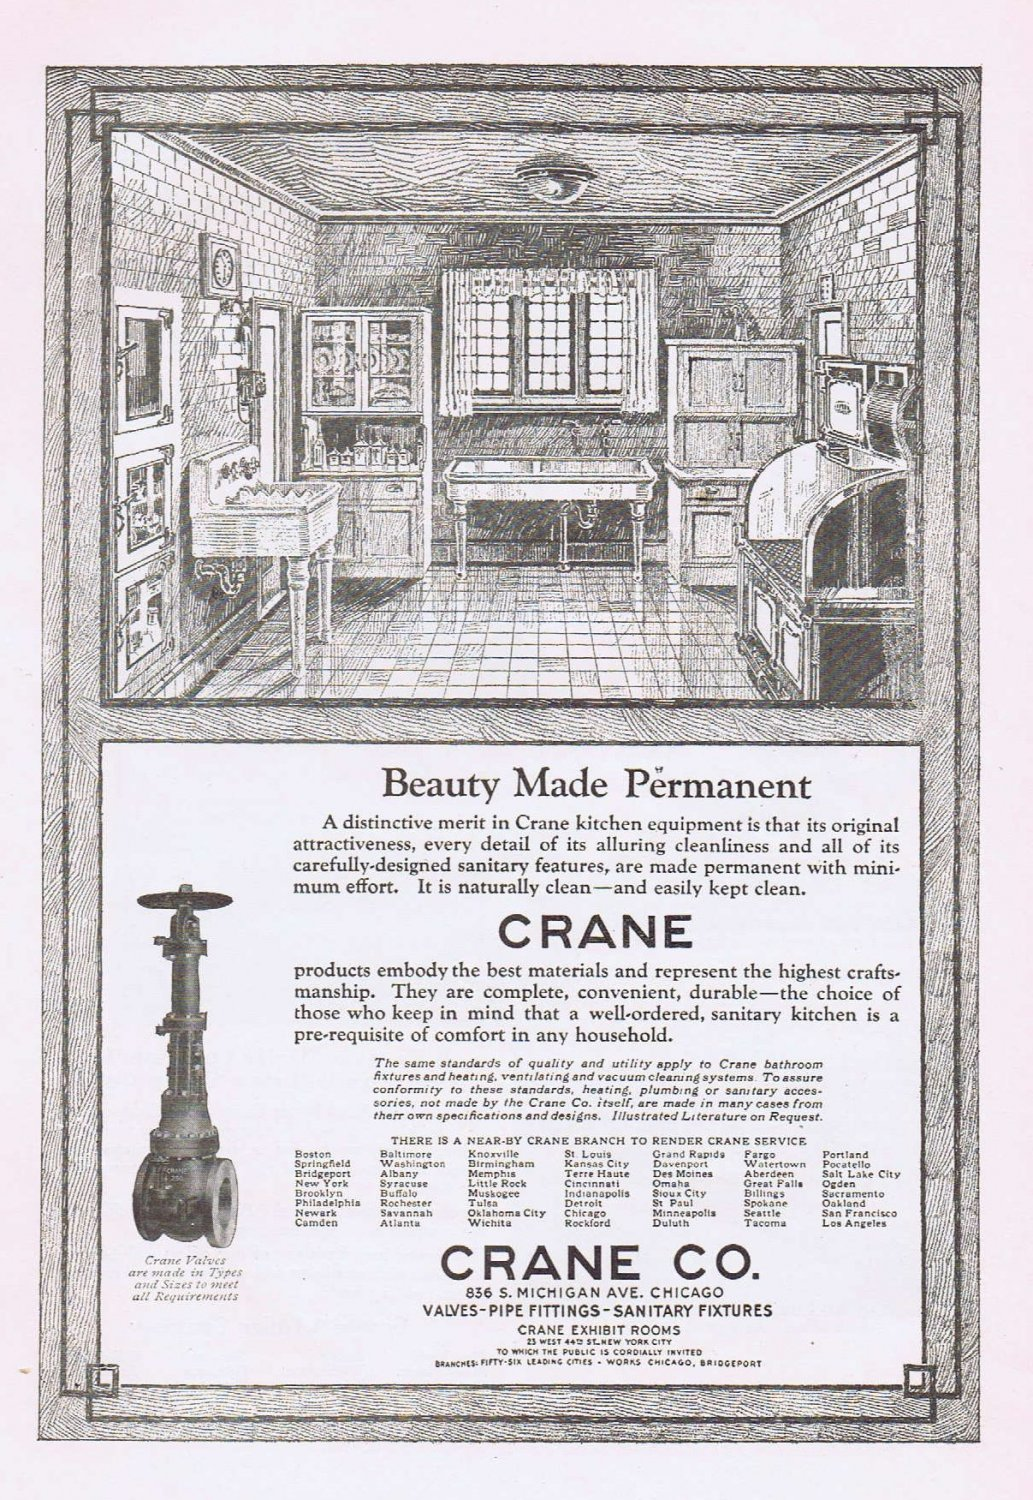 1920 Crane Kitchen Original Vintage Advertisement with Beauty Made Permanent